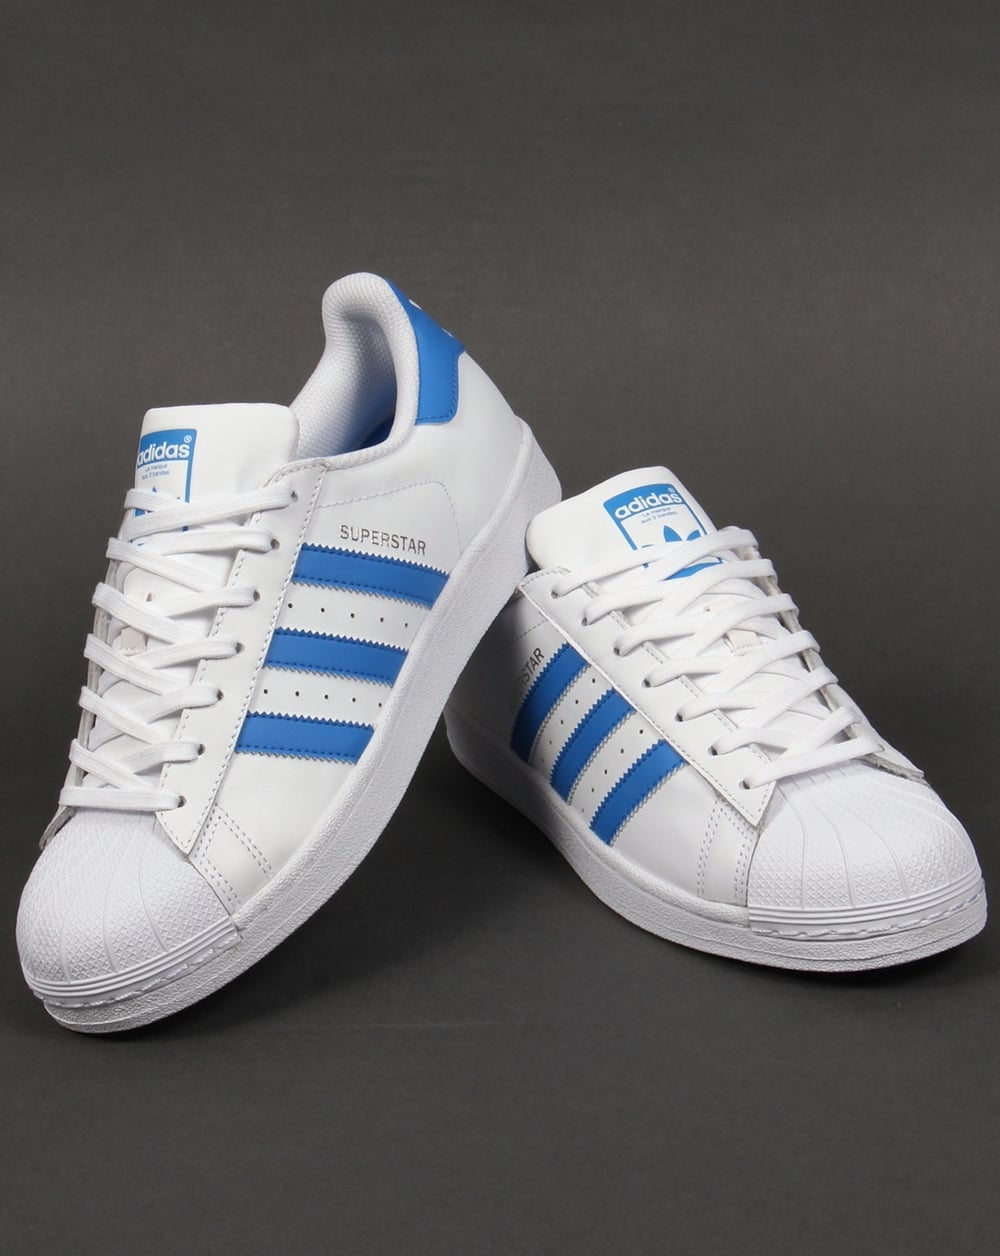 Adidas Trainers Adidas Superstar Trainers White/royal Blue ...